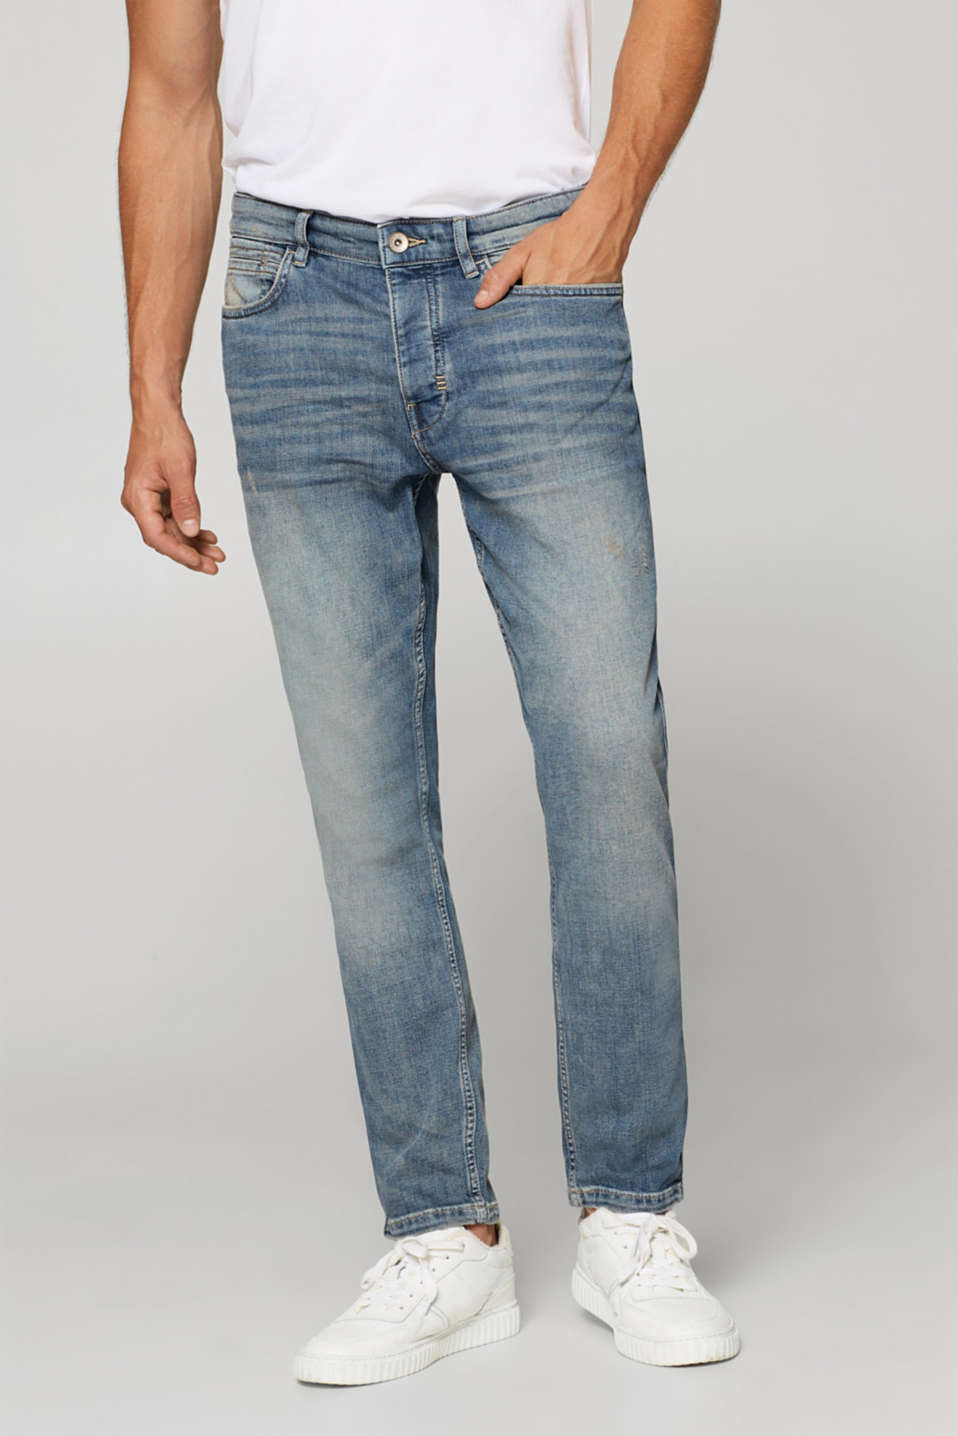 Esprit - Stretch jeans with a slight vintage effect